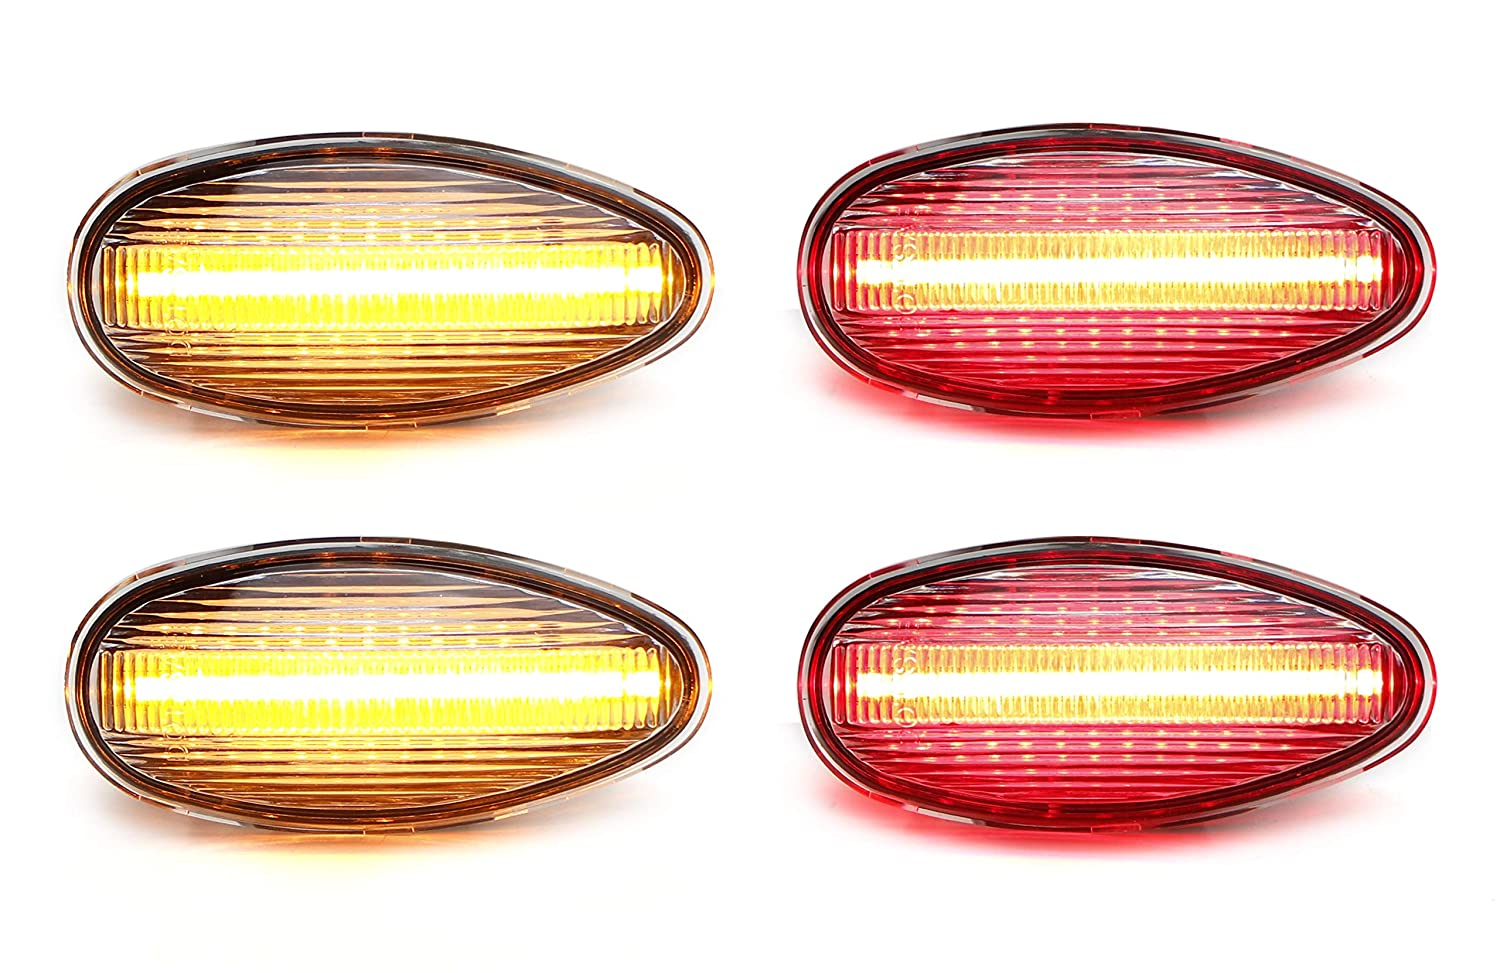 iJDMTOY Smoked Lens Amber//Red Full LED Trunk Bed Marker Lights Set For 2008-14 Chevy GMC 2500HD 3500HD Dually Truck Double Wheel Side Fenders Powered by Total 60 LED